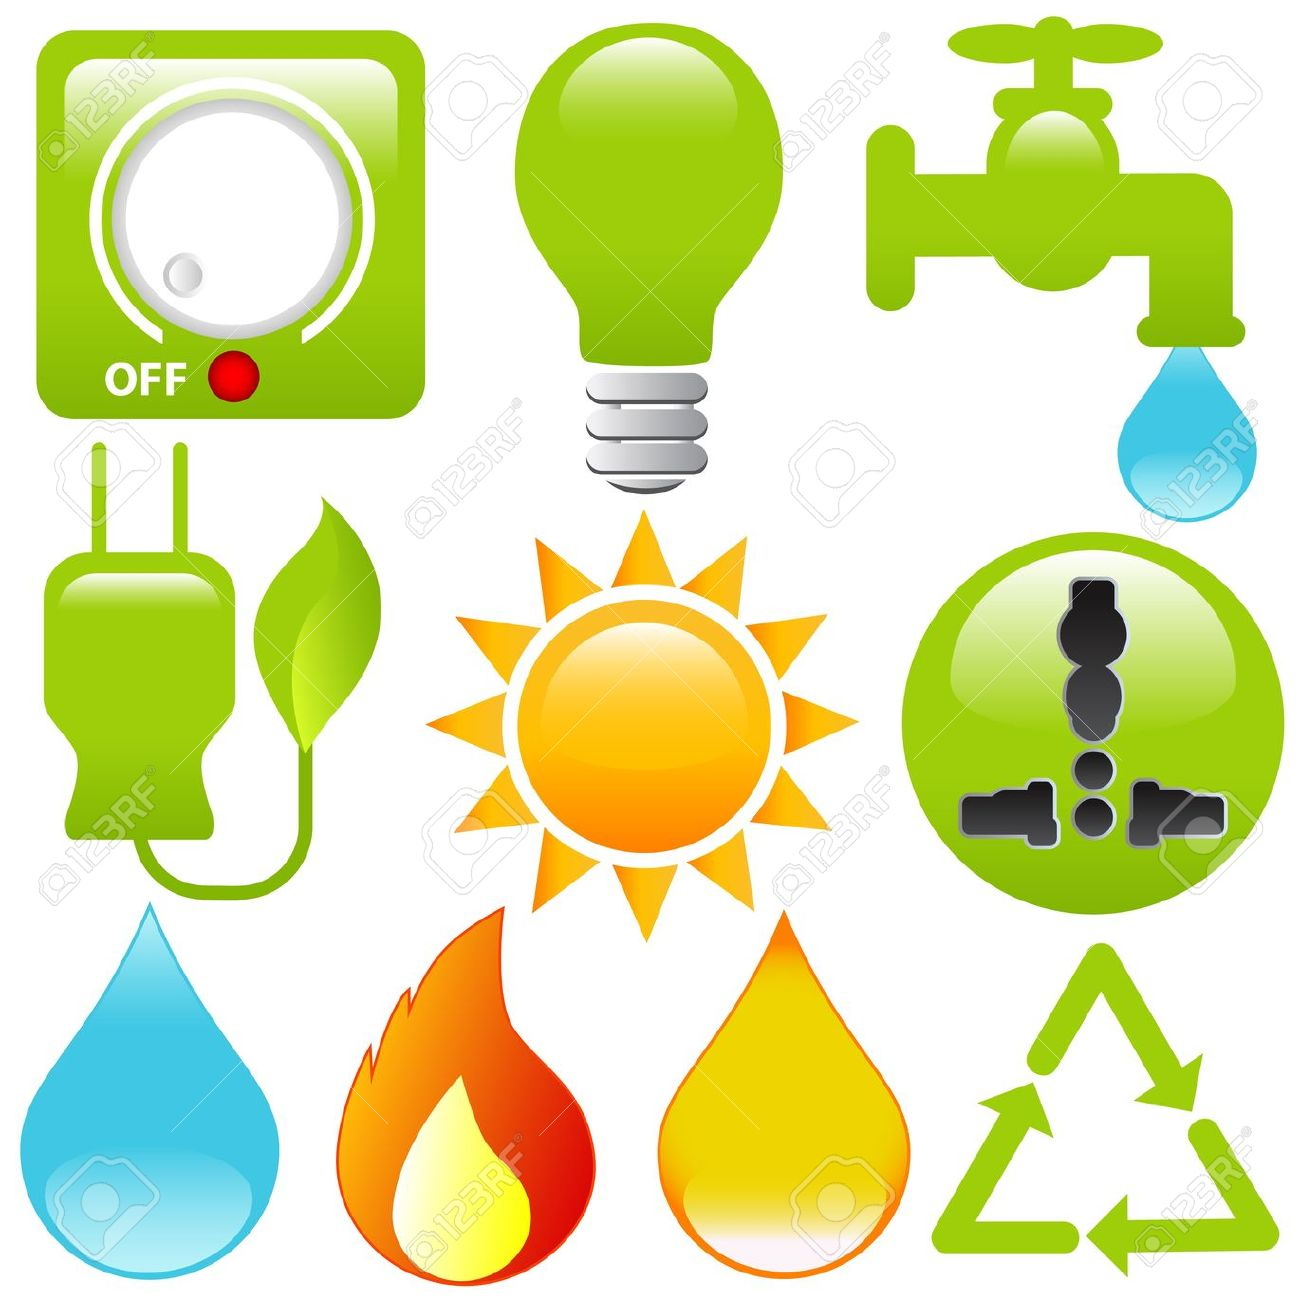 Energy efficient water clipart.